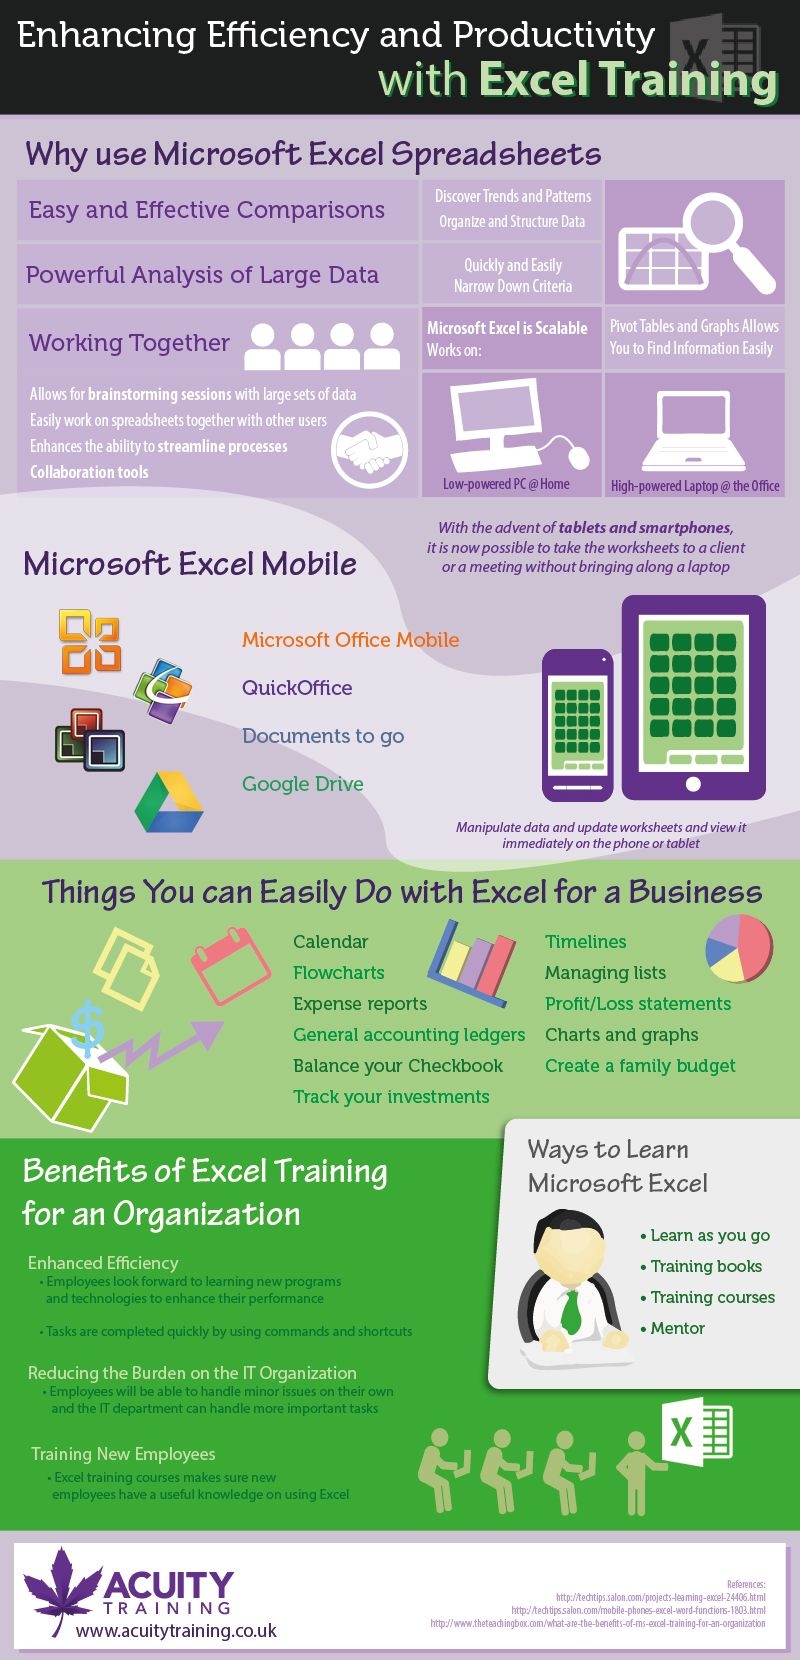 Enhancing Efficiency and Productivity with Excel Training - http://www.acuitytraining.co.uk/news/excel-training-infographic/